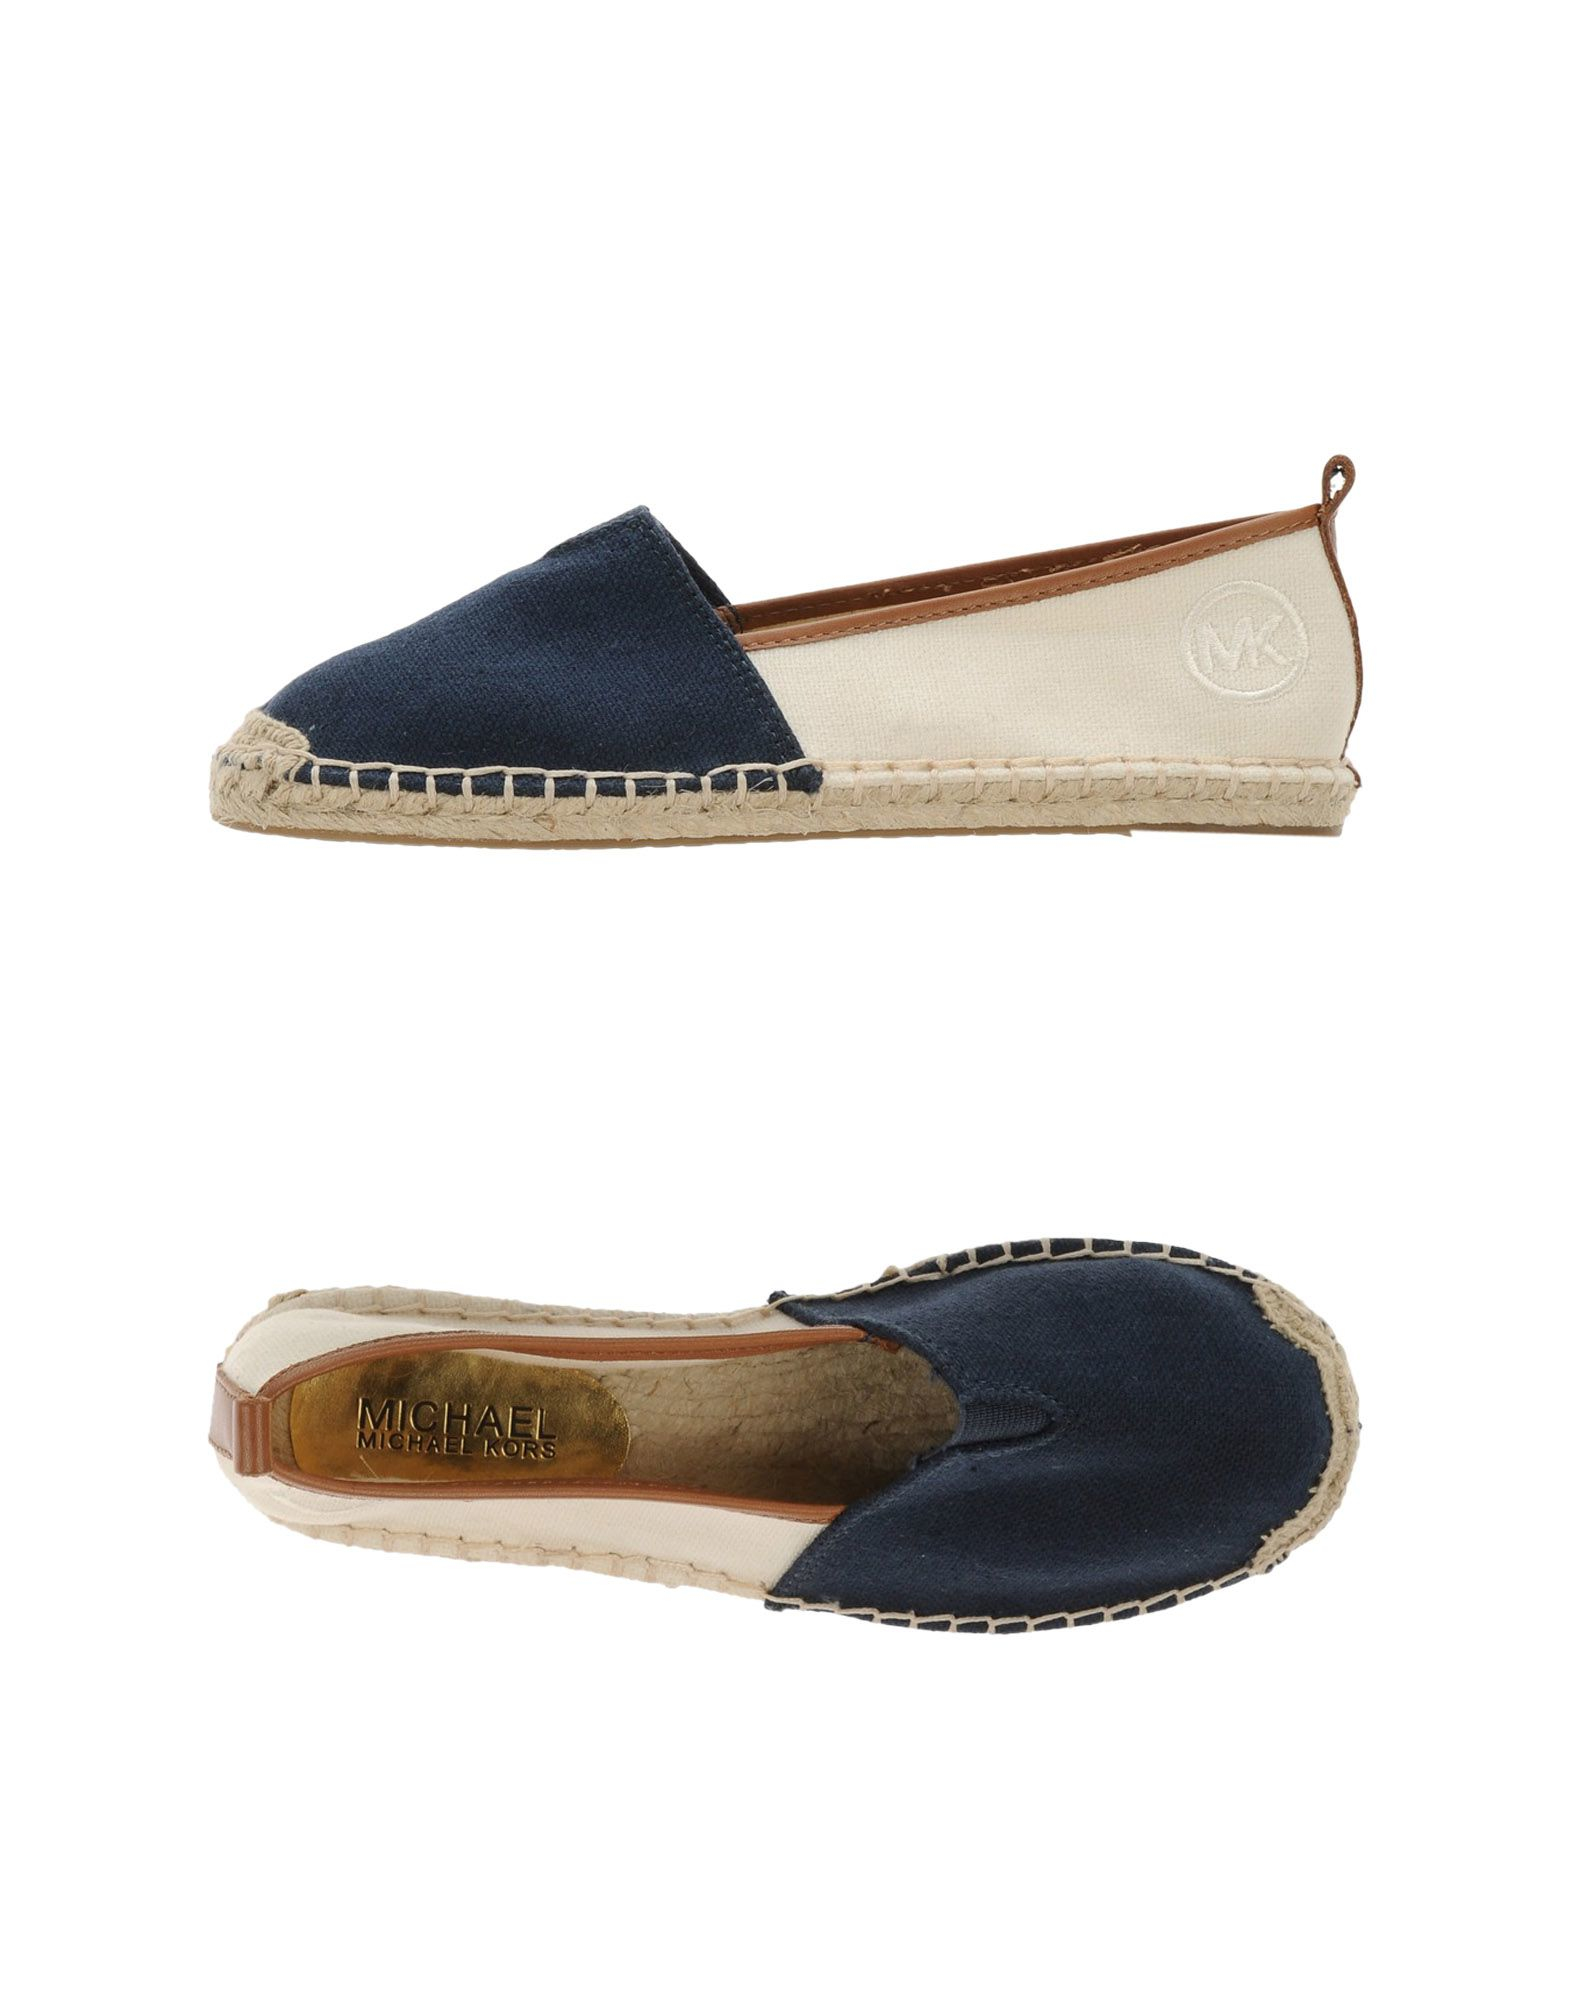 michael michael kors espadrilles in blue lyst. Black Bedroom Furniture Sets. Home Design Ideas